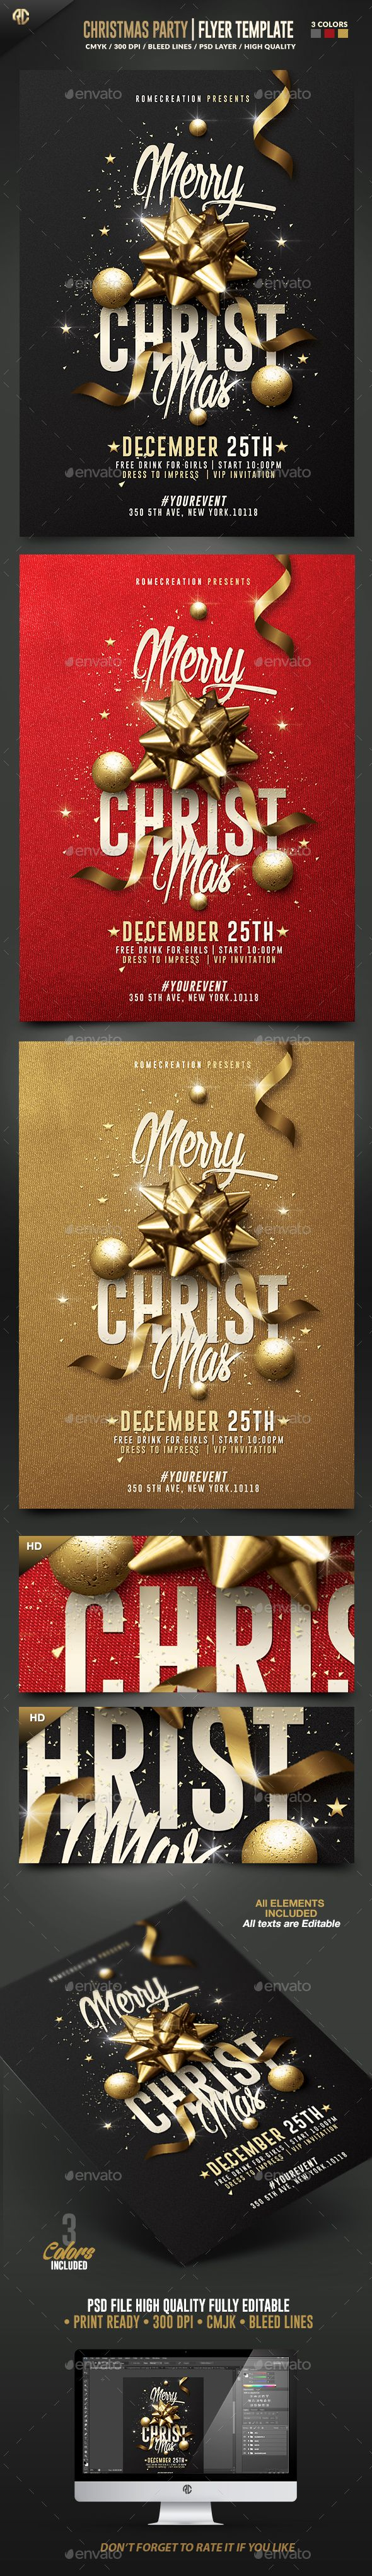 Classy Christmas Party Flyer Template PSD #design Download…